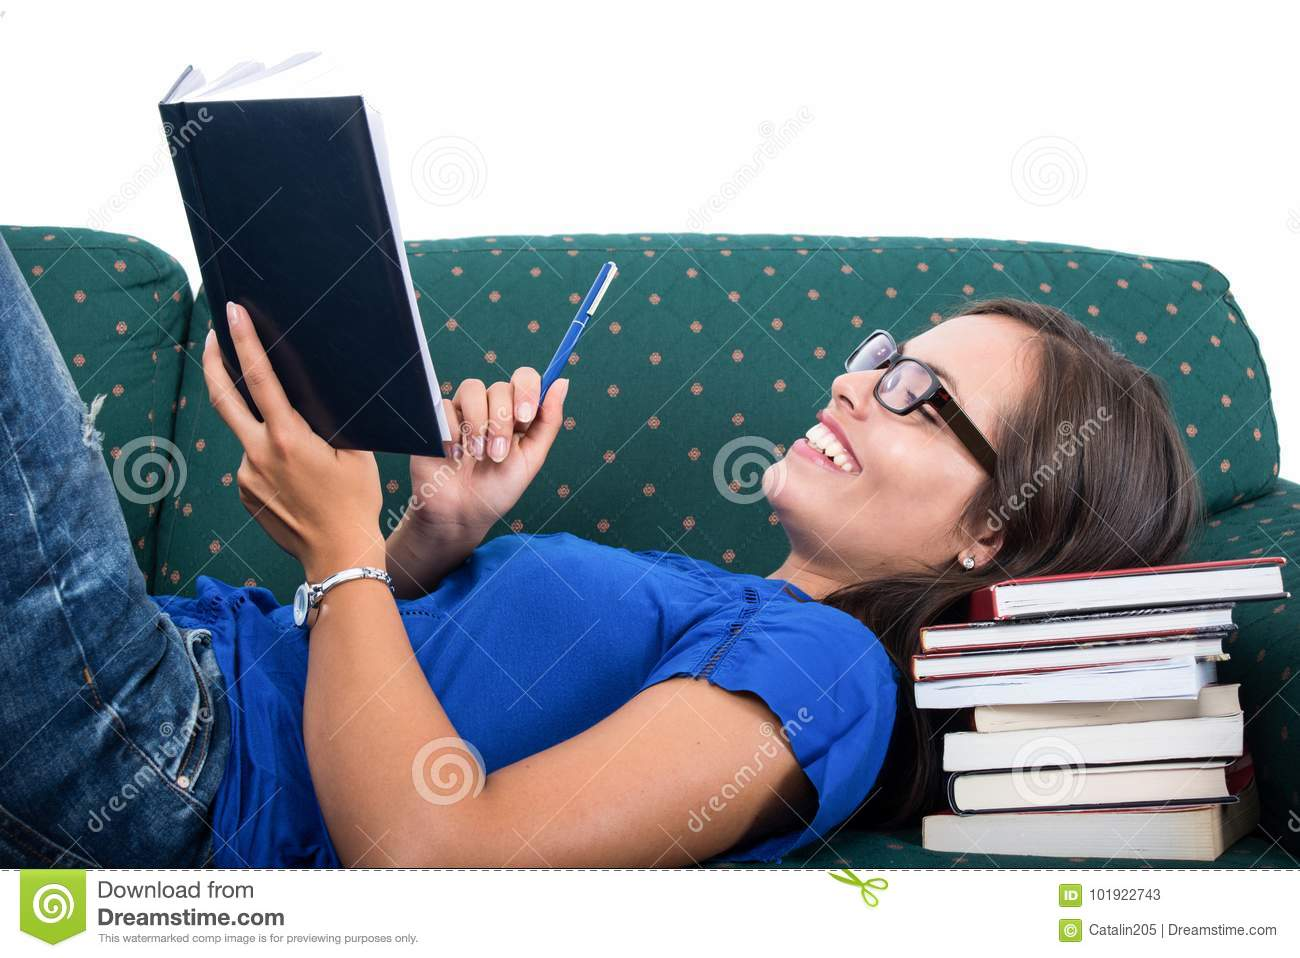 Student girl laid on couch smiling holding notebook